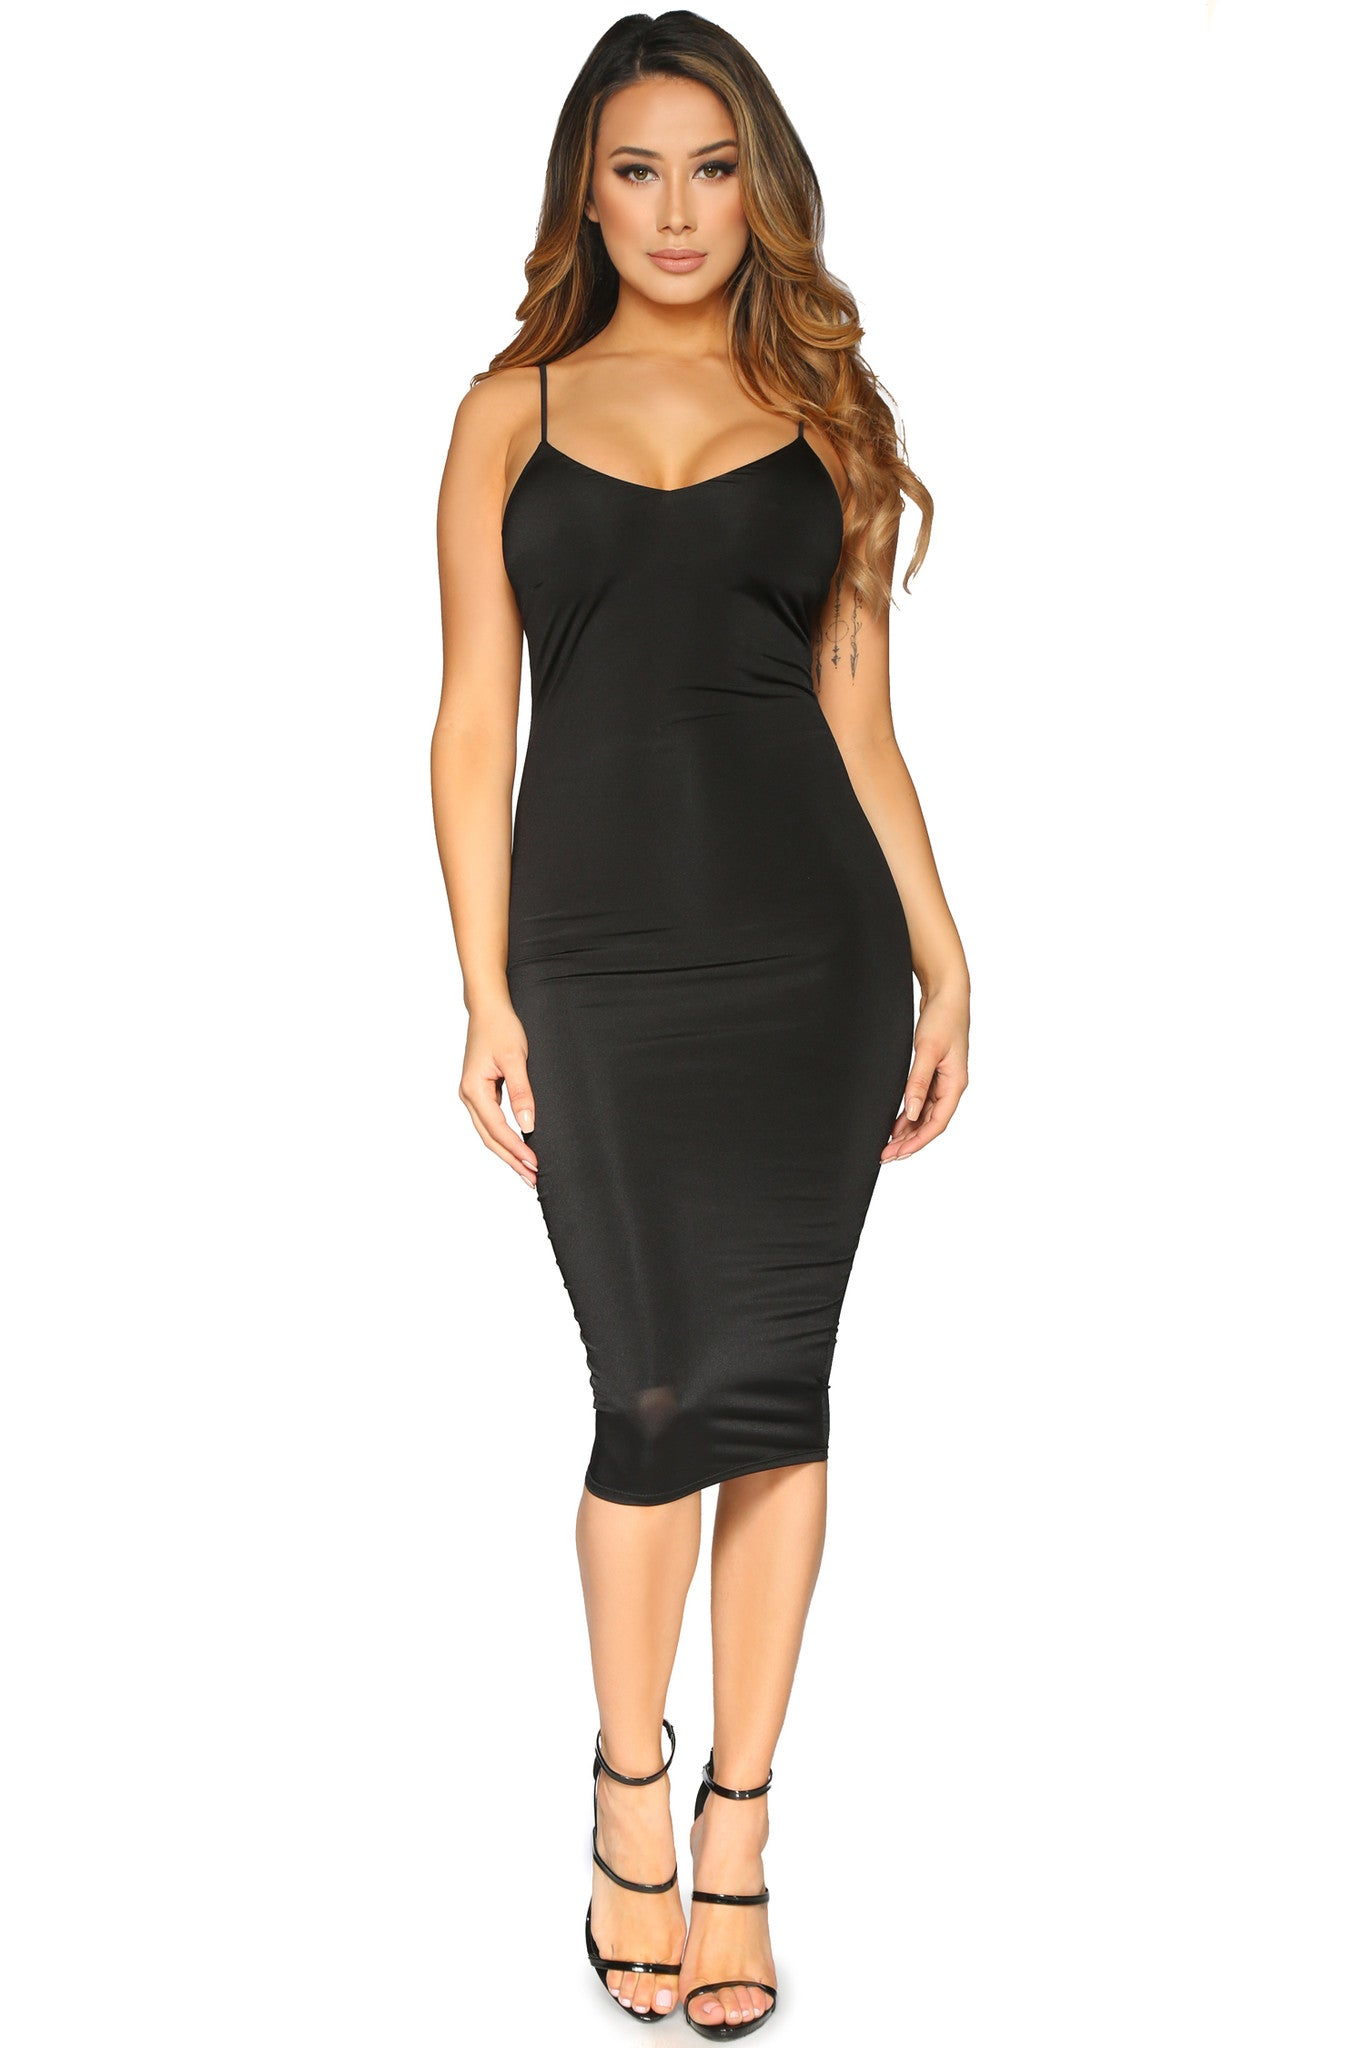 PATRICIA DRESS BLACK GLAM ENVY FRONT PROFILE